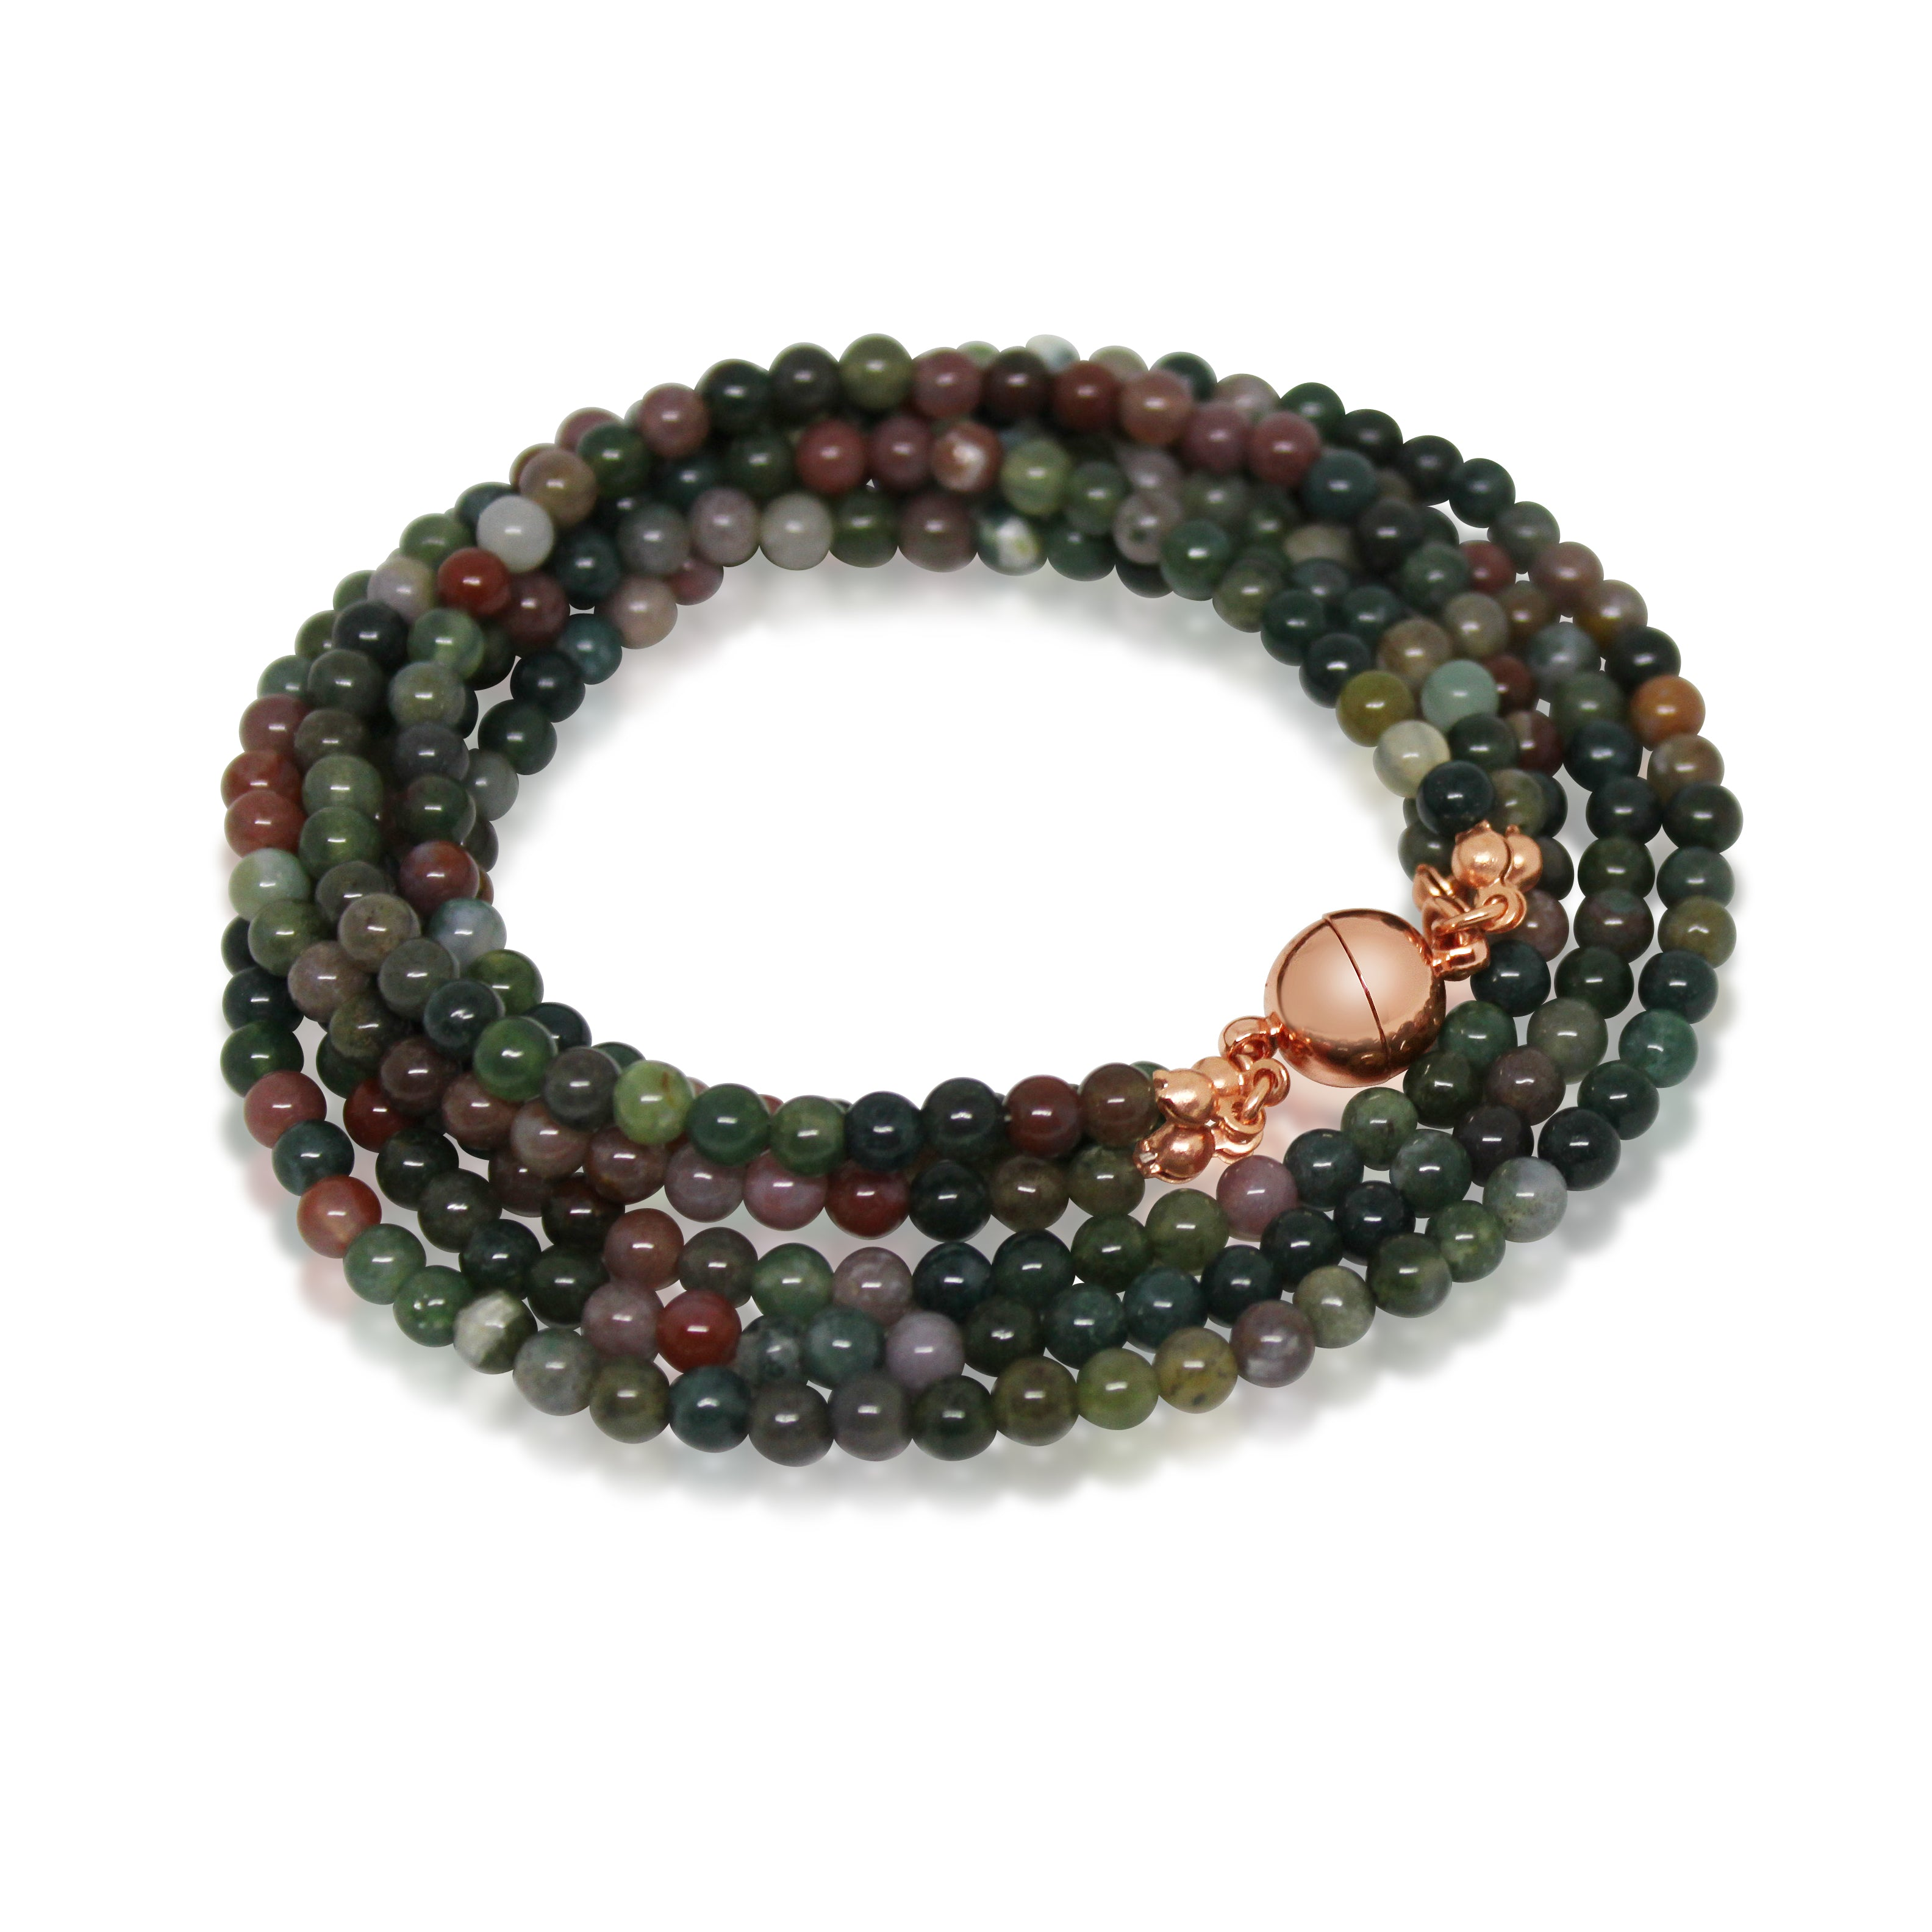 My Way Necklace - Indian Agate - choose magnet colour